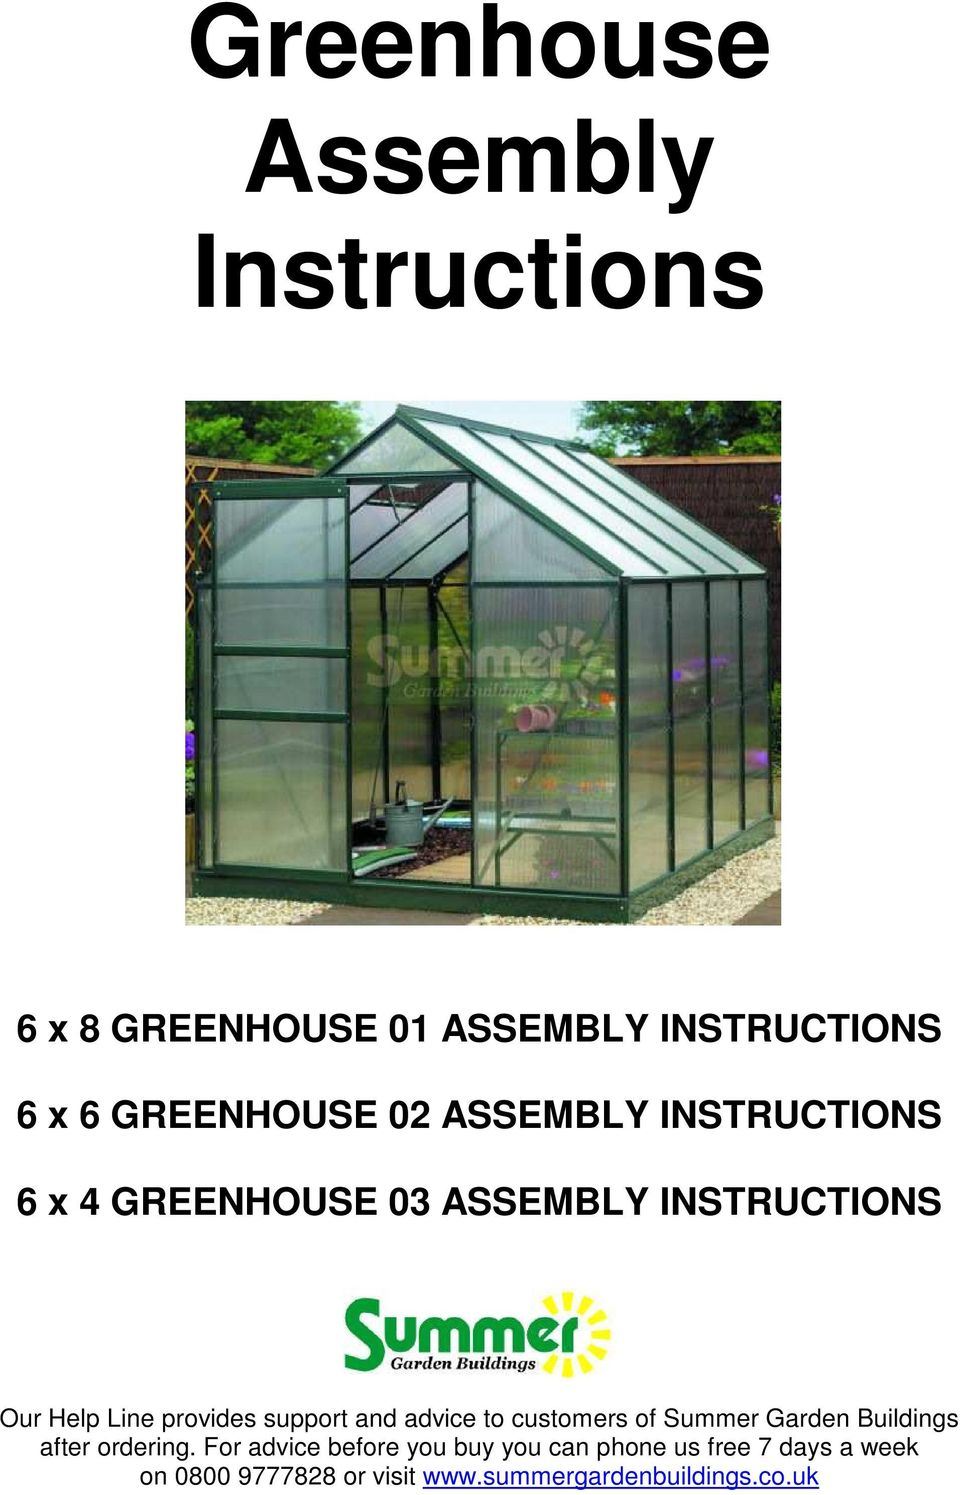 6 x 6 GREENHOUSE 02 ASSEMBLY INSTRUCTIONS 6 x